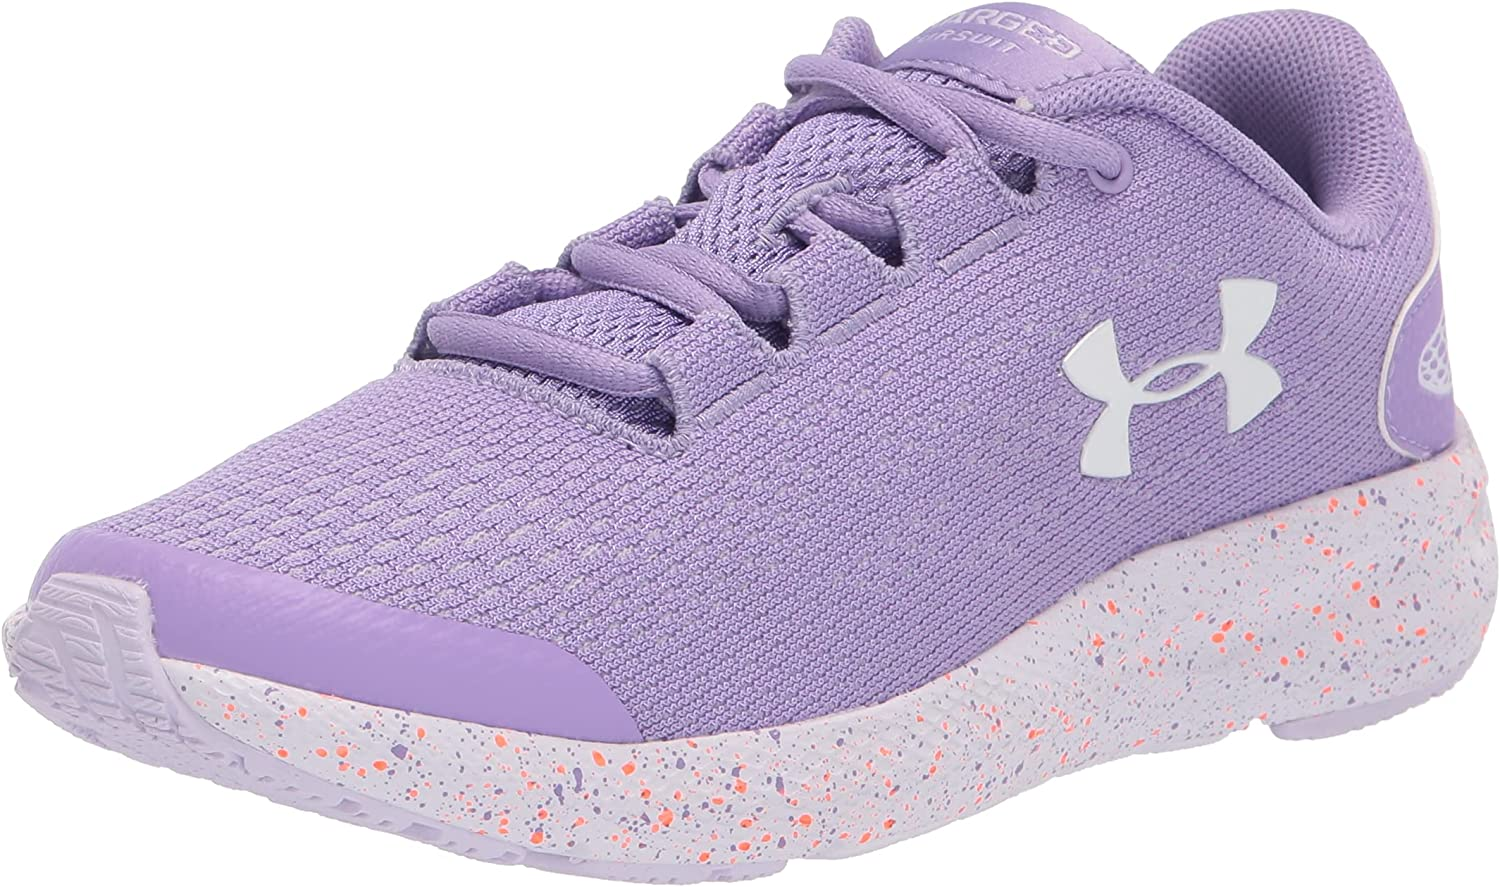 Under Armour Women's Charged Shoe Pursuit Spring Sale price new work one after another Running 2